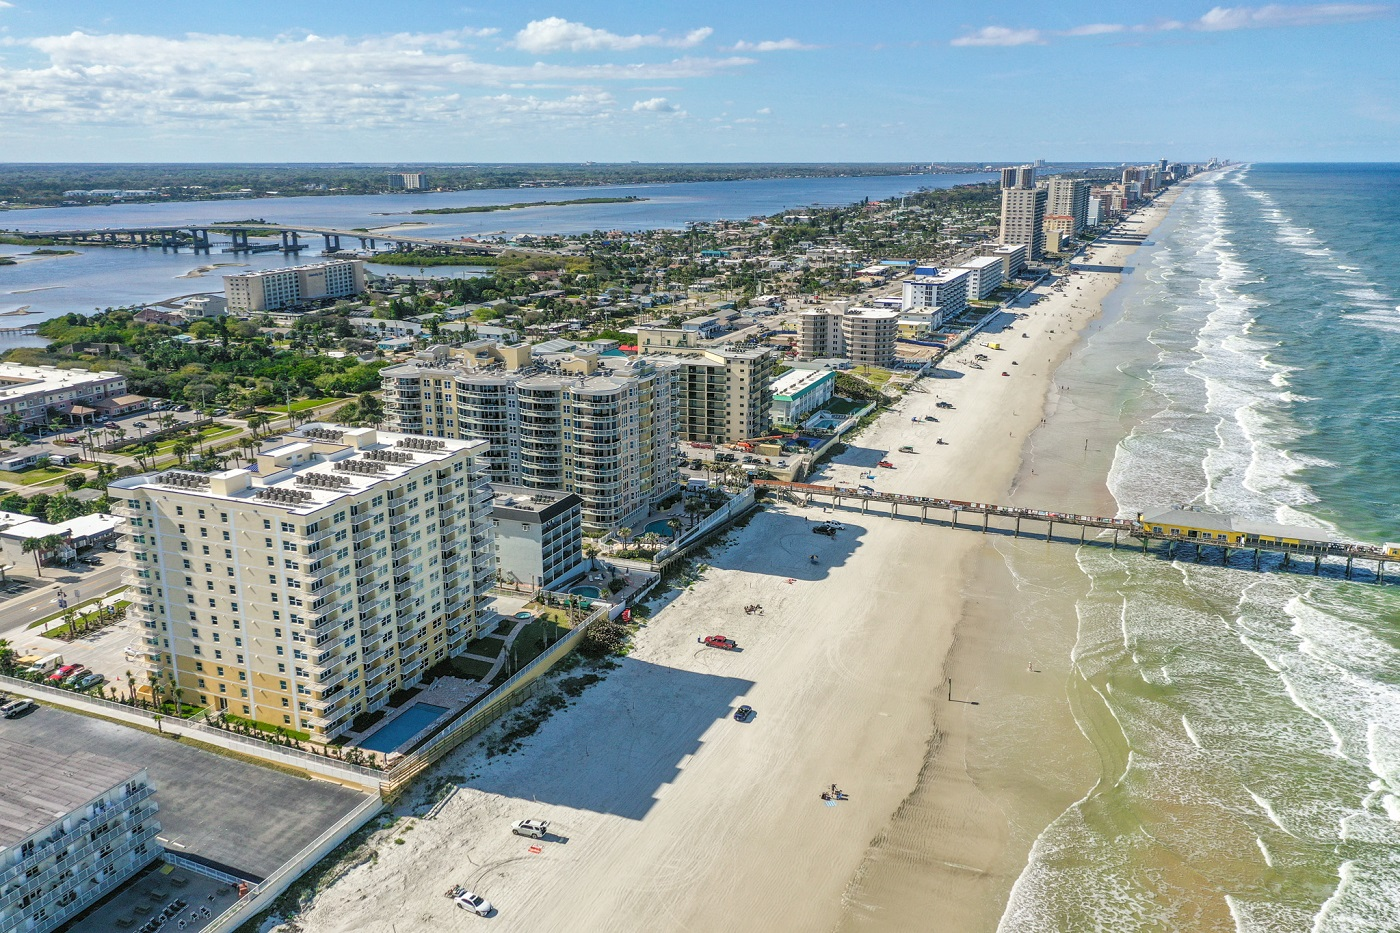 Aerial View of Oceanfront Condos